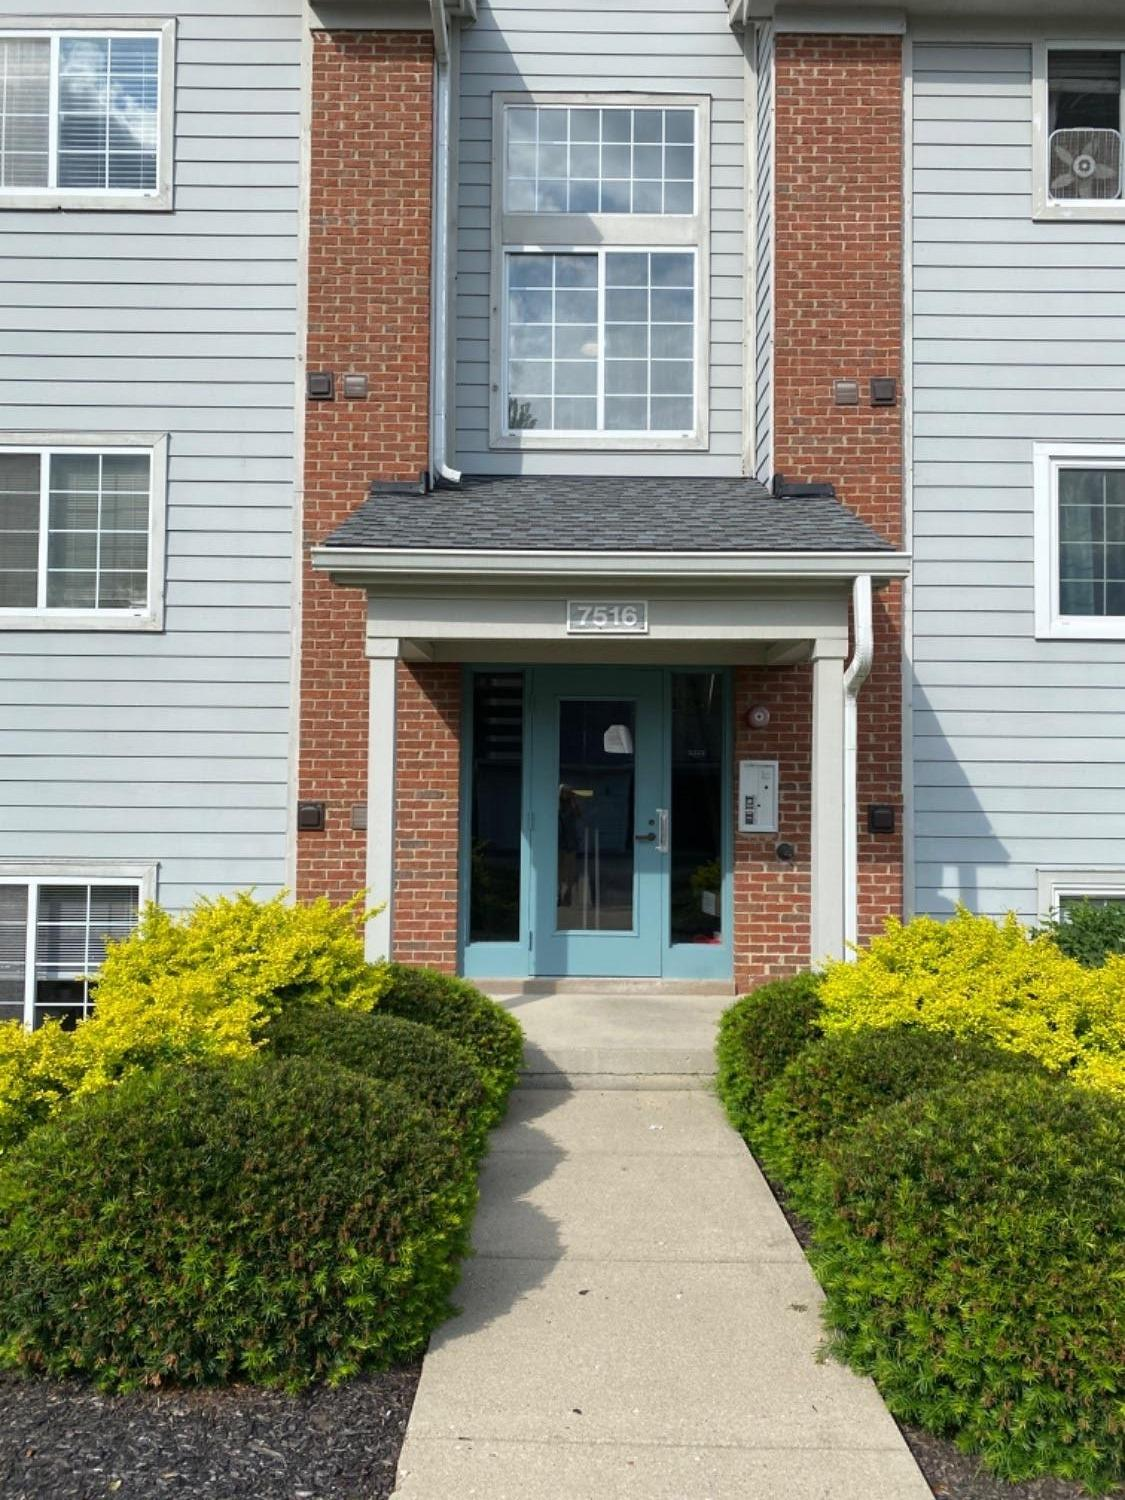 Property for sale at 7516 Shawnee Lane Unit: 165, West Chester,  Ohio 45069